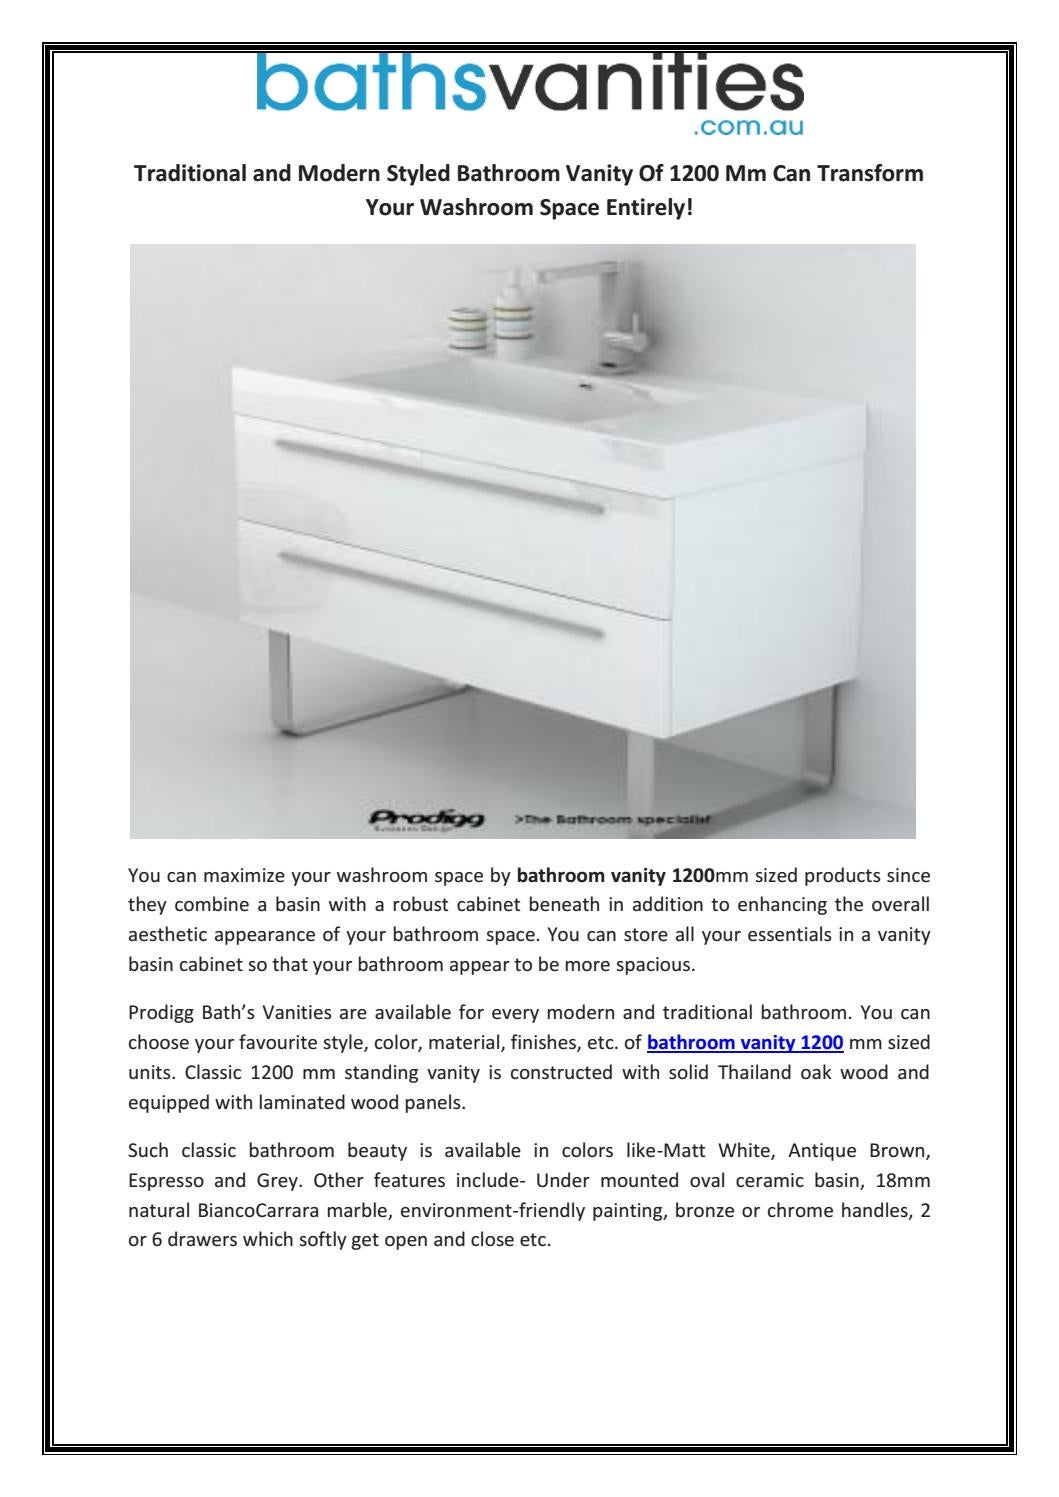 Traditional And Modern Styled Bathroom Vanity Of 1200 Mm Can Transform Your Washroom Space Entirely By Baths Vanities Issuu